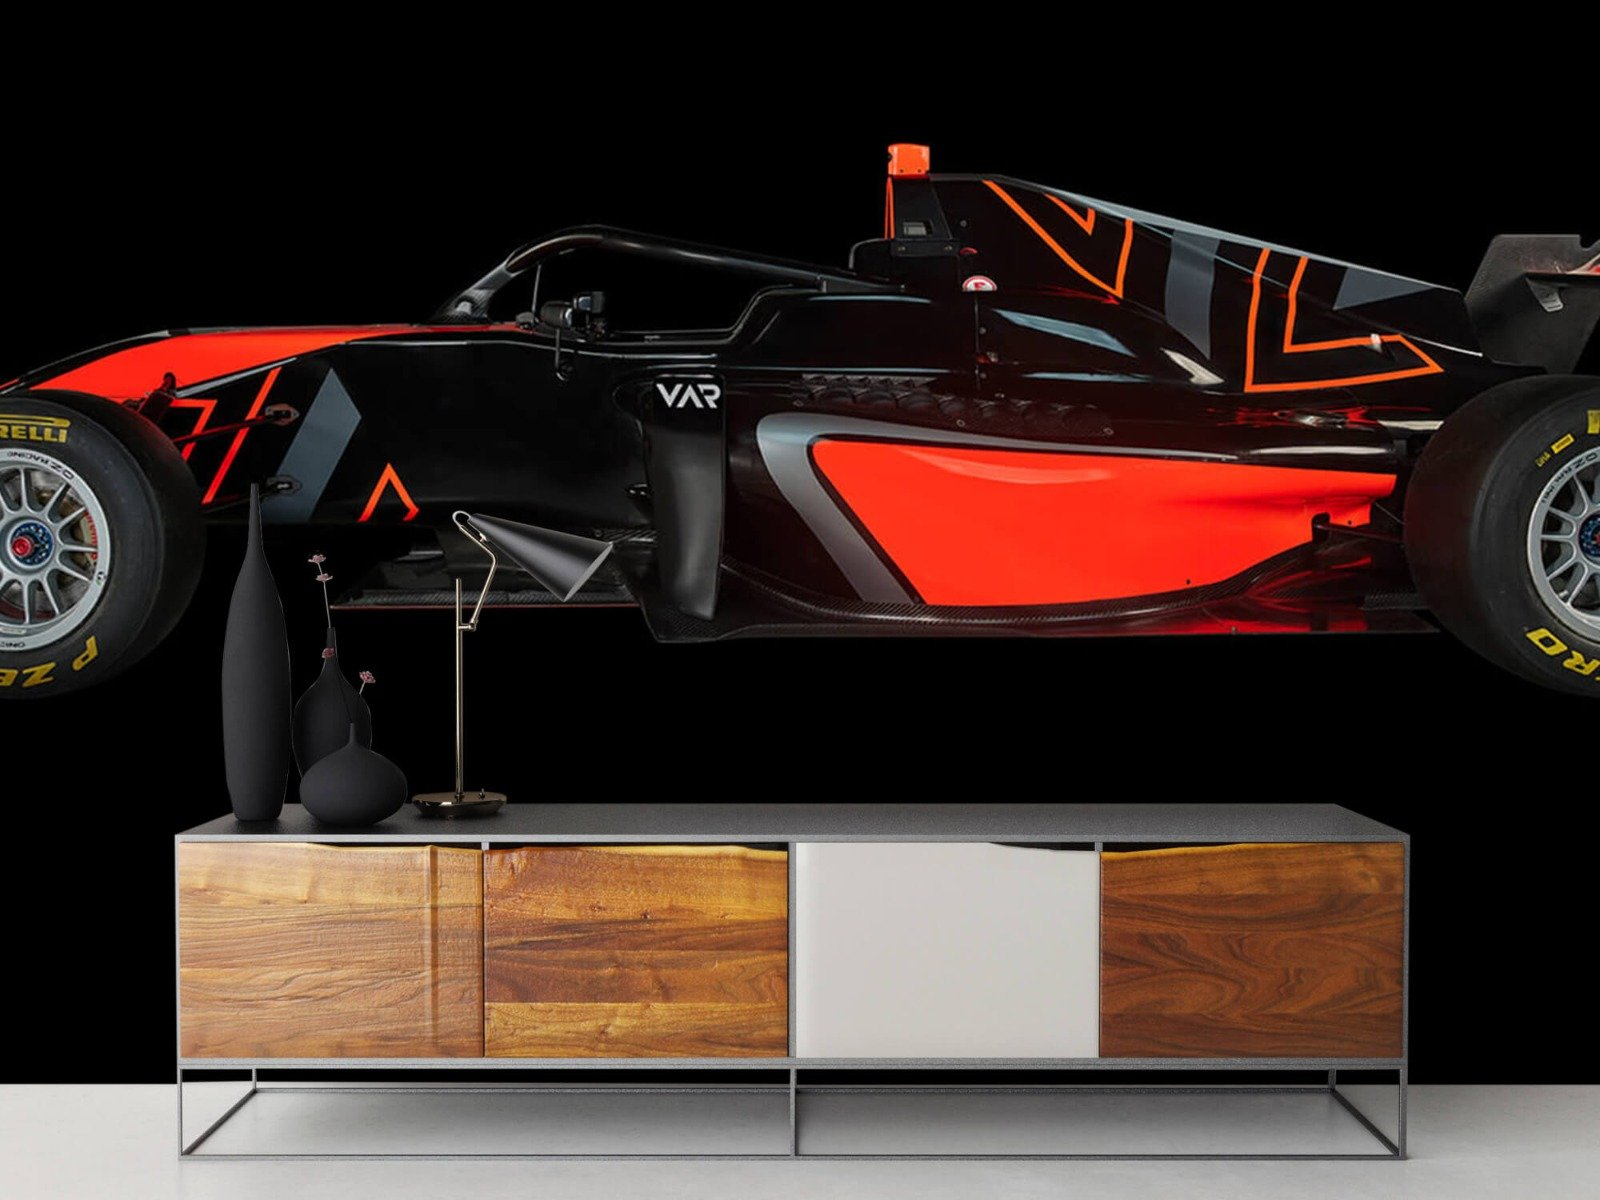 Sportauto's - Formule 3 - Lower side view - dark - Tienerkamer 17